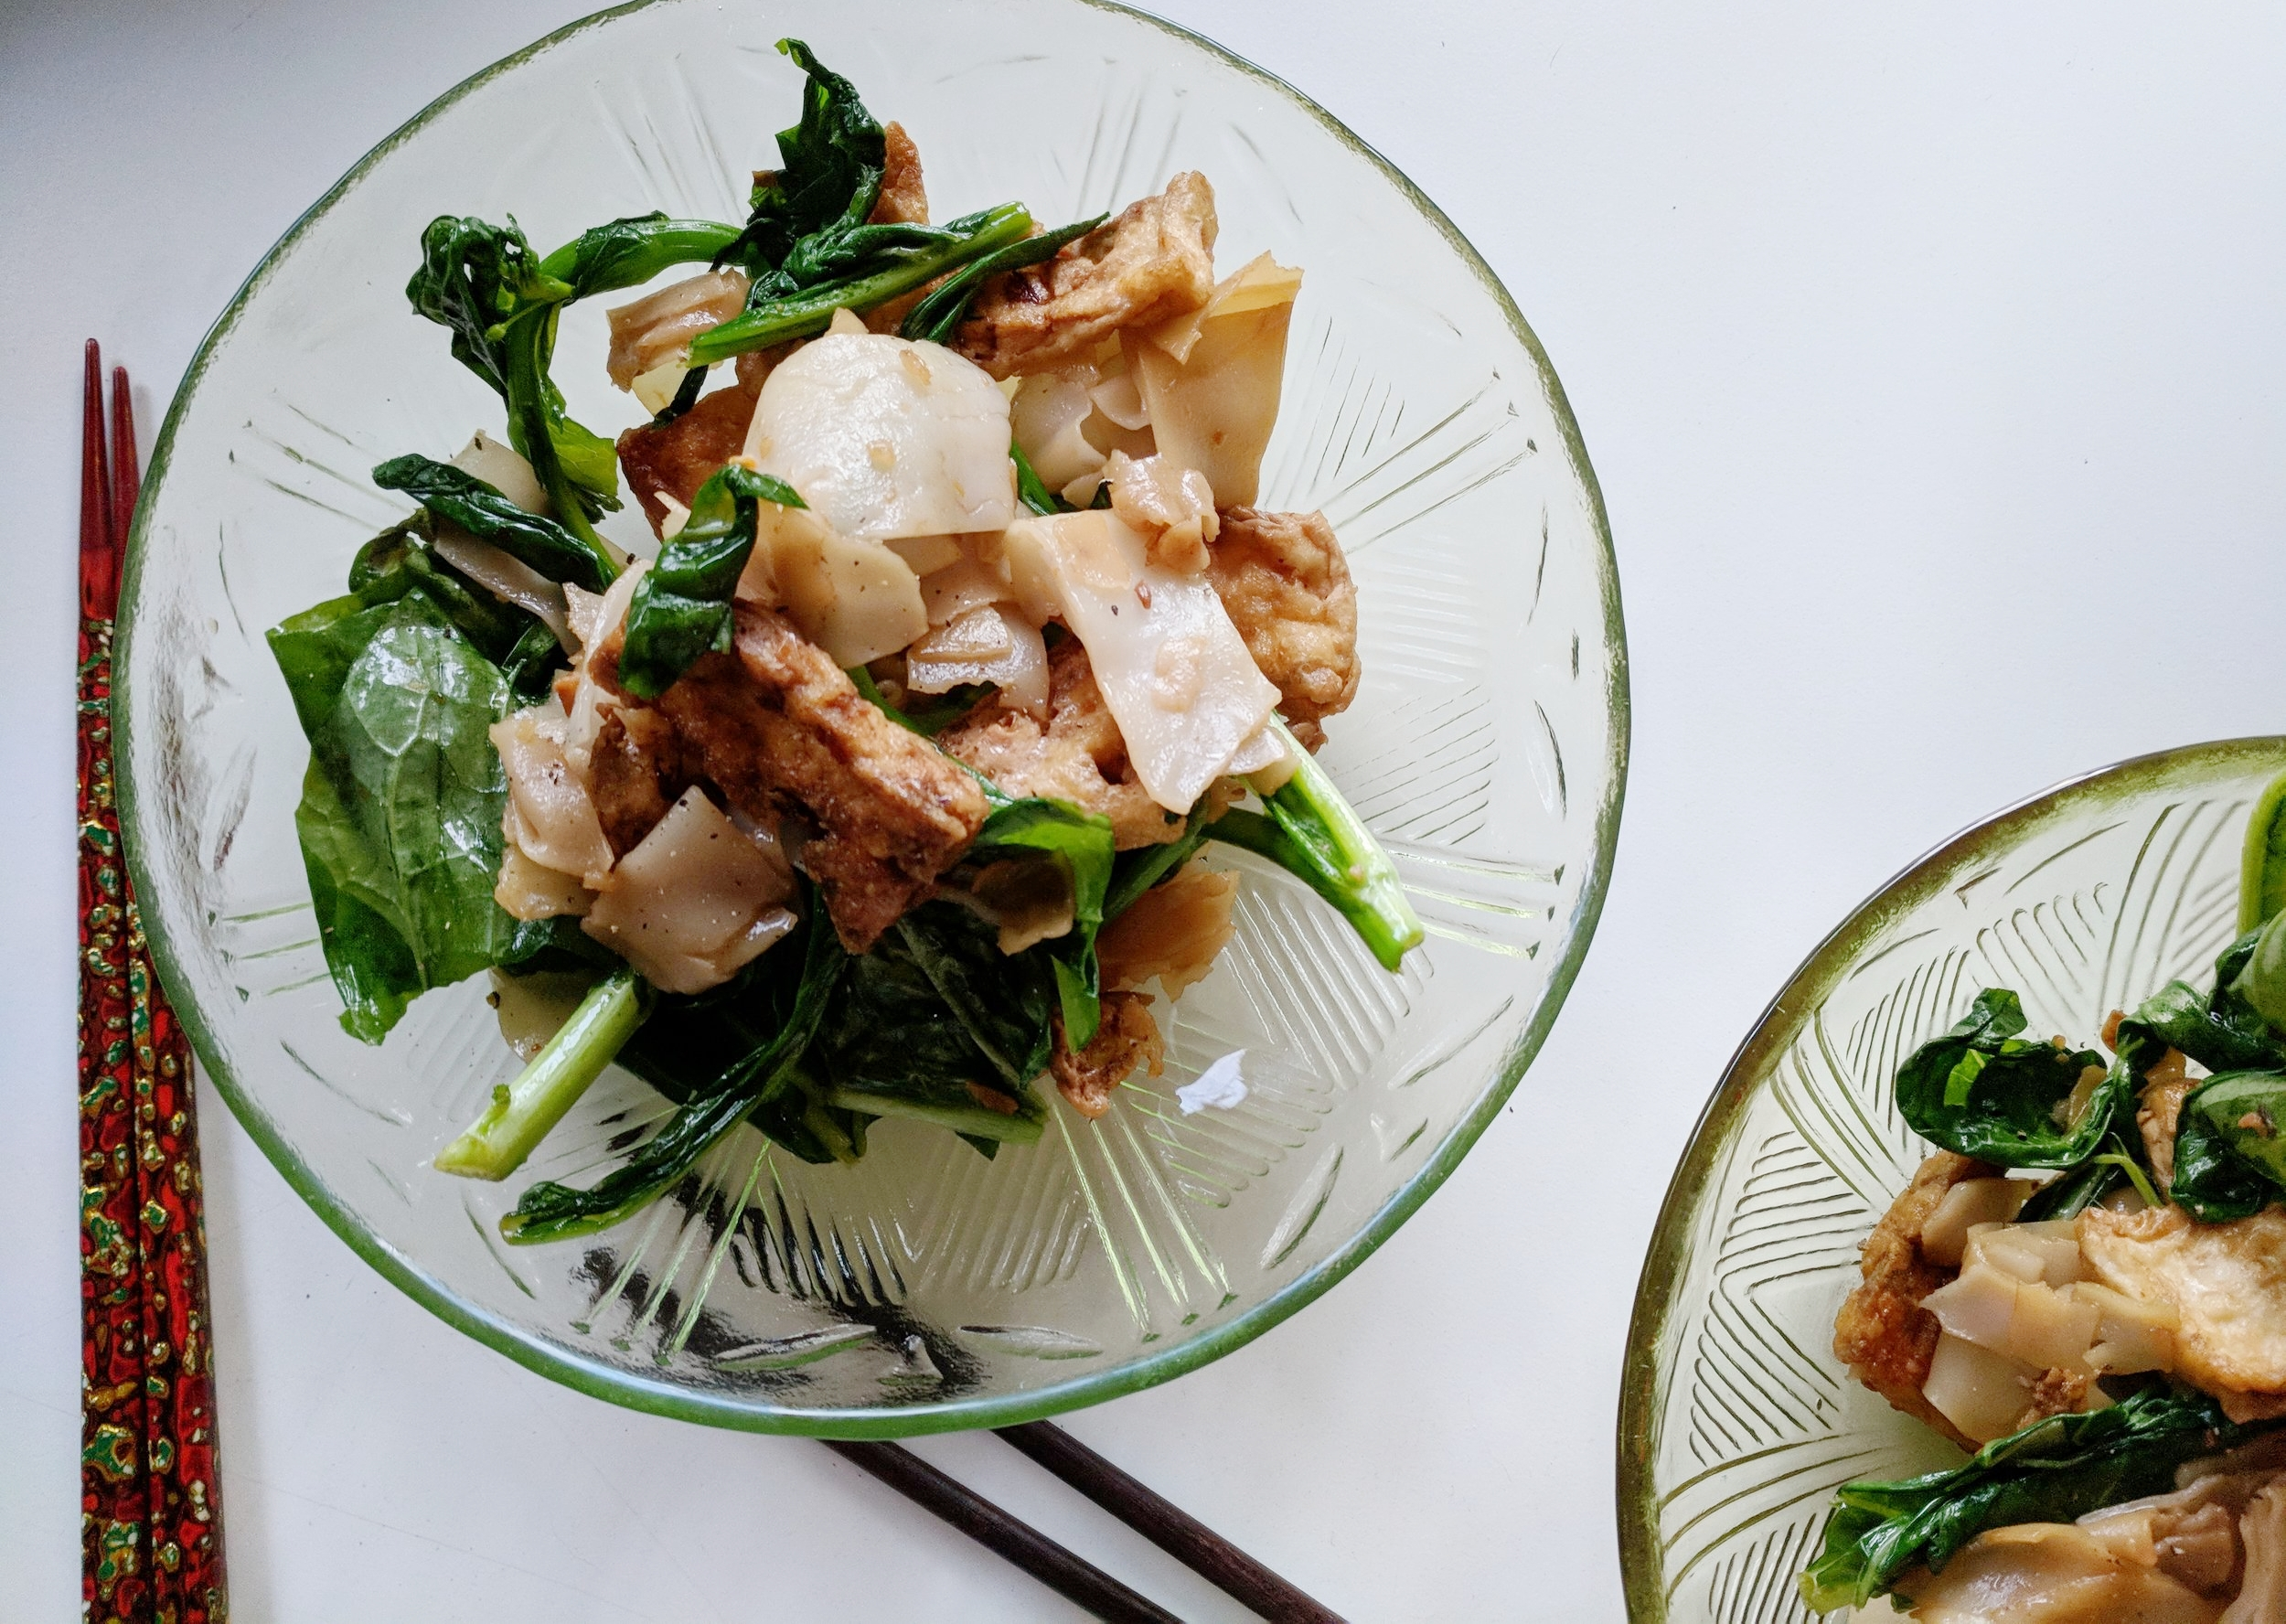 Pad See Ew with the fresh rice noodles, adapted from Eating Thai Food